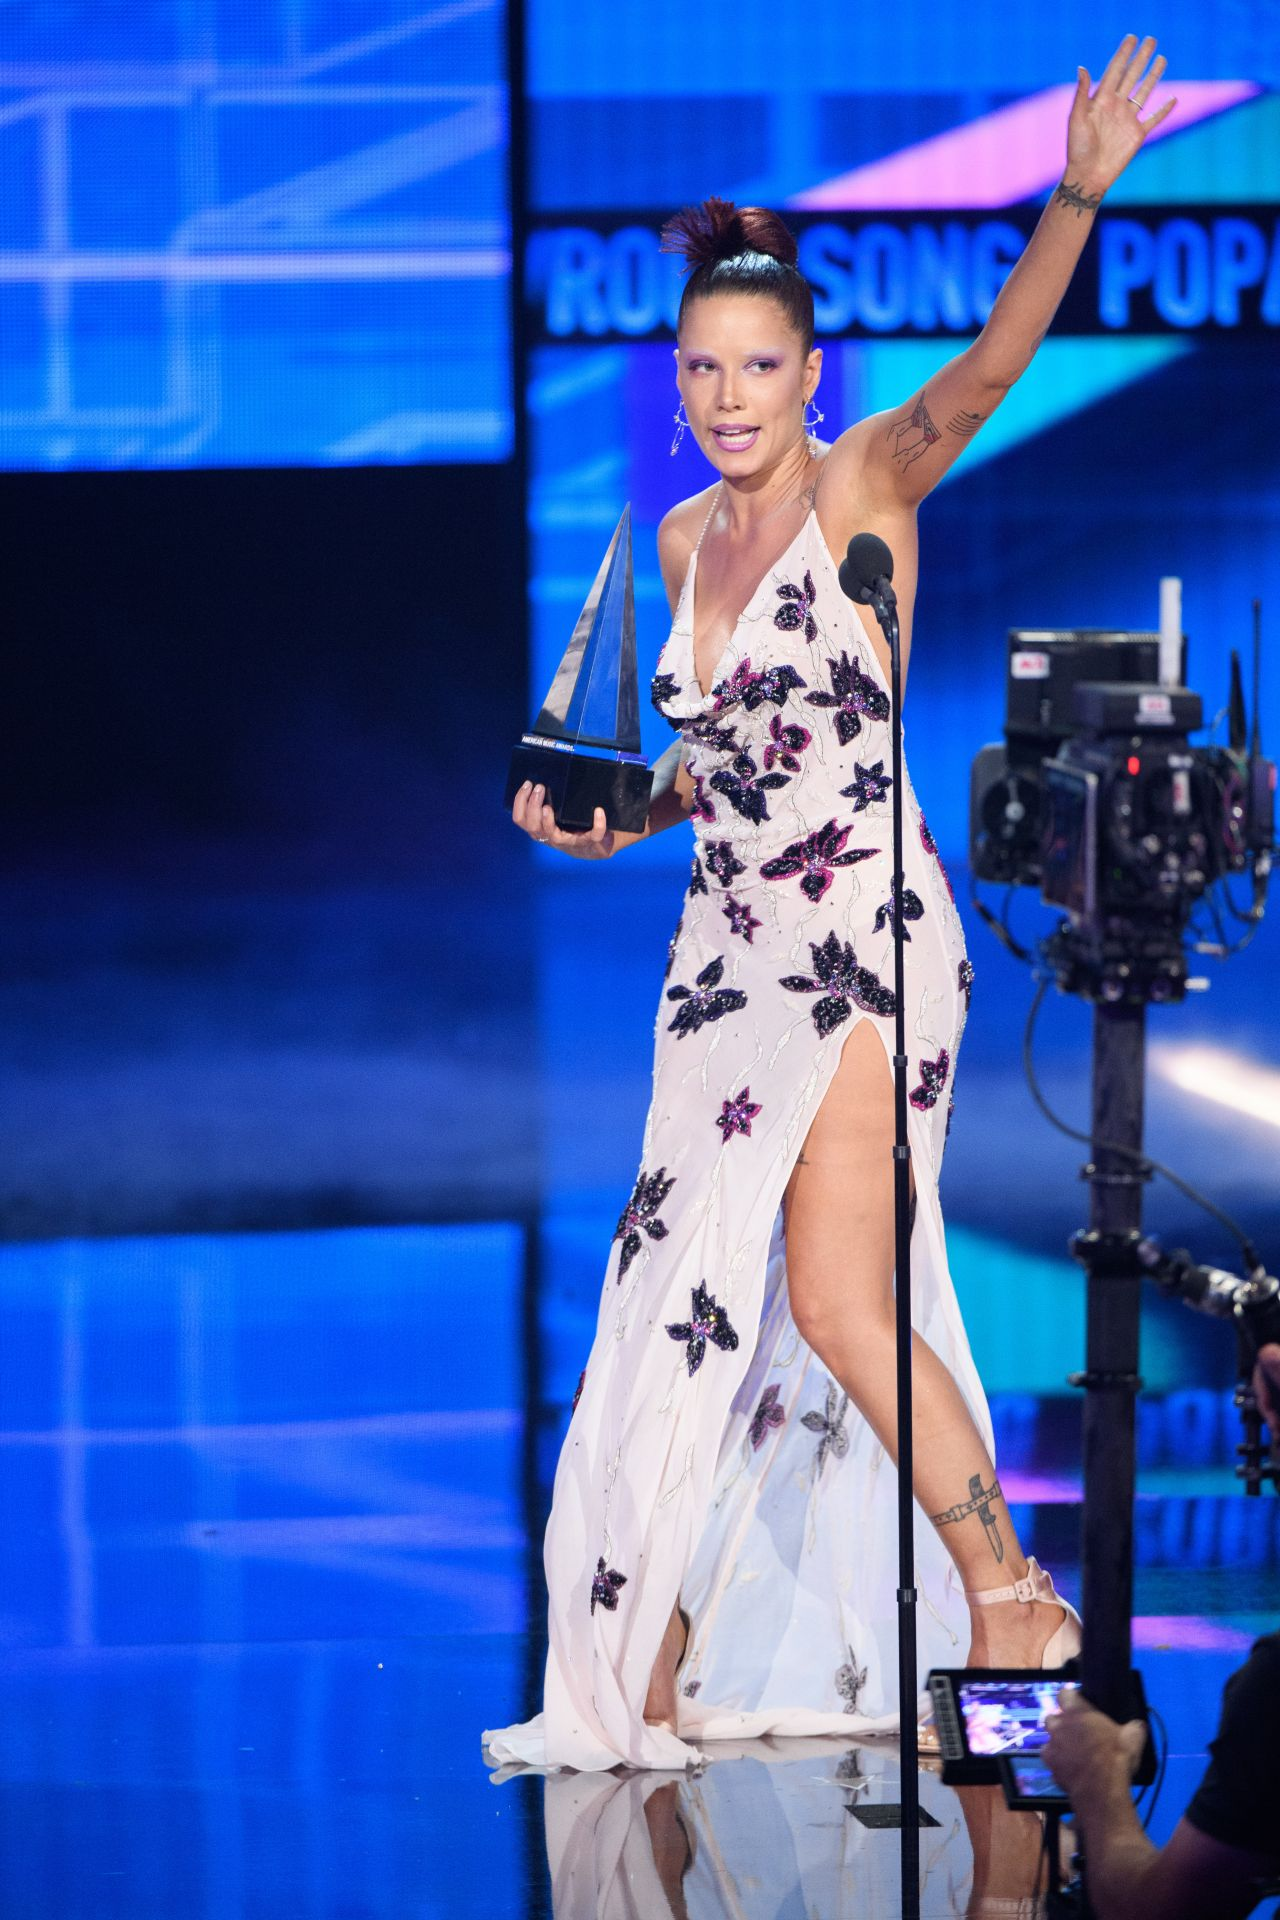 halsey-in-redemption-dress-for-acceptance-speech-2019-amas